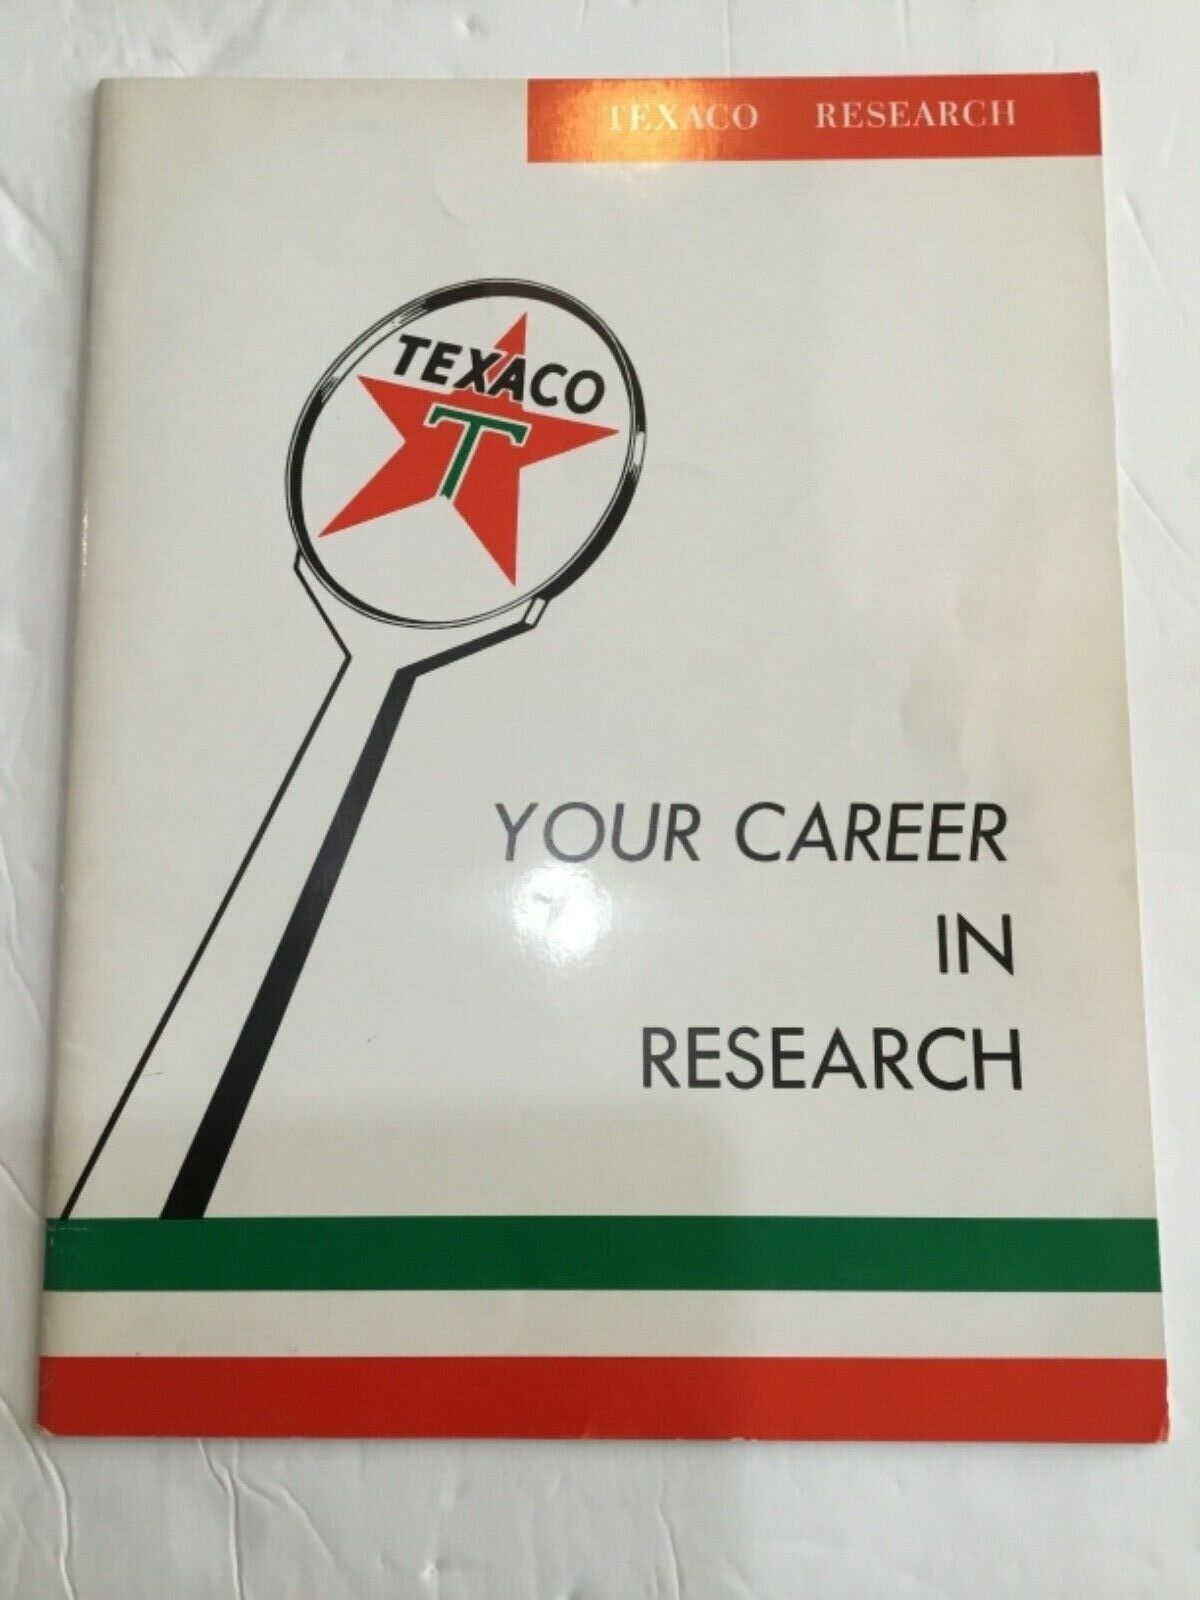 TEXACO: YOUR CAREER IN RESEARCH THE TEXACO COMPANY